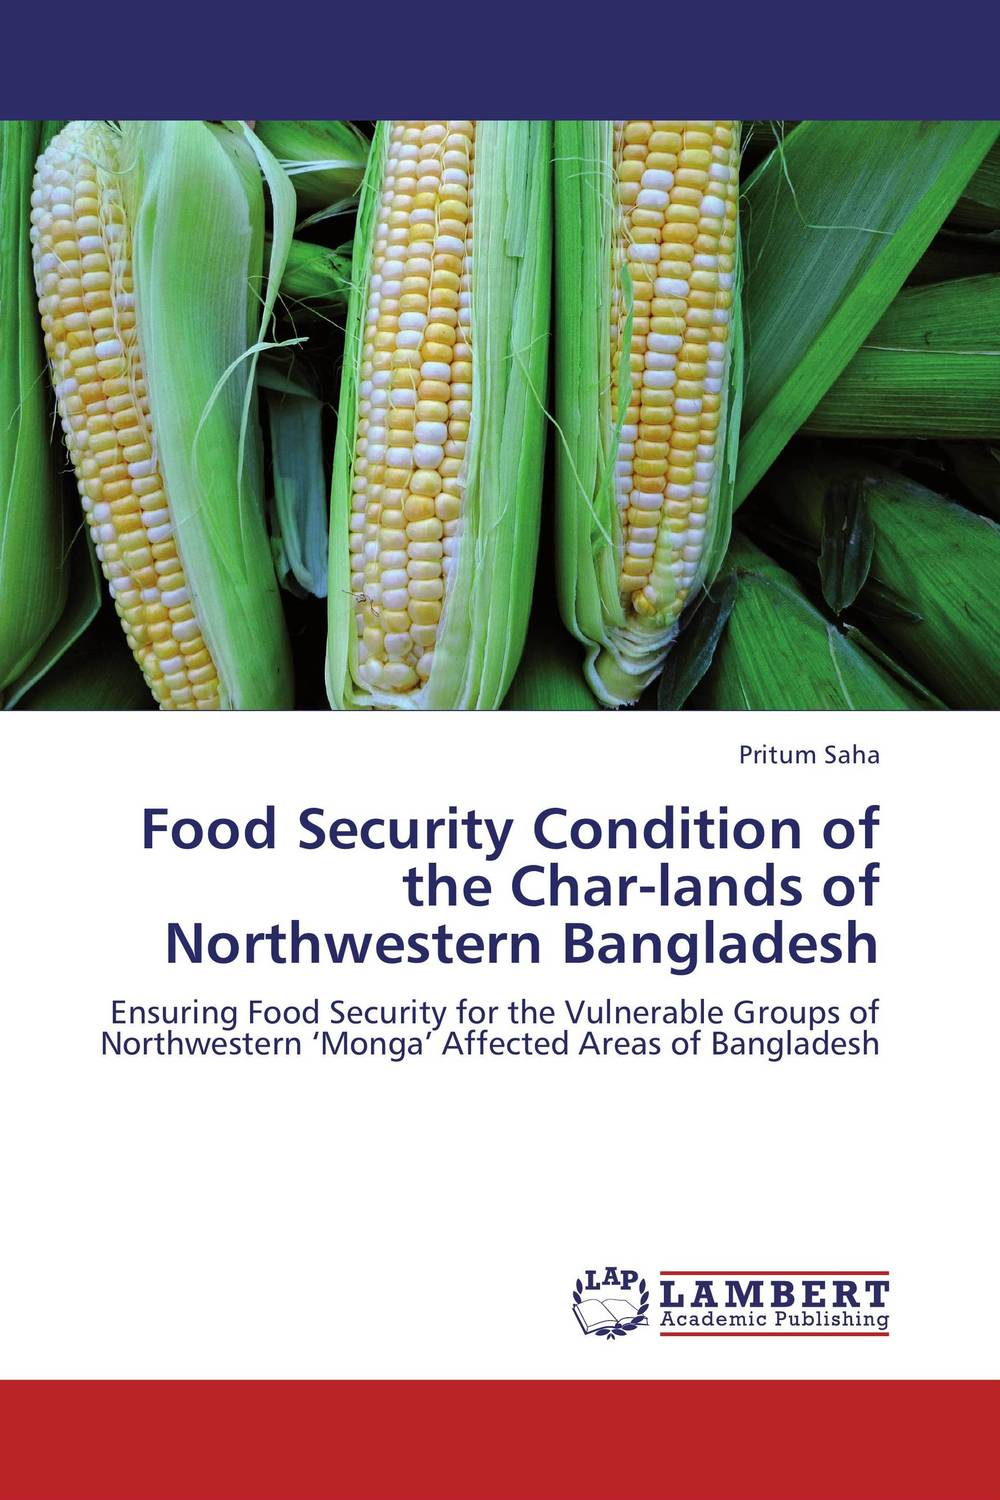 Food Security Condition of the Char-lands of Northwestern Bangladesh